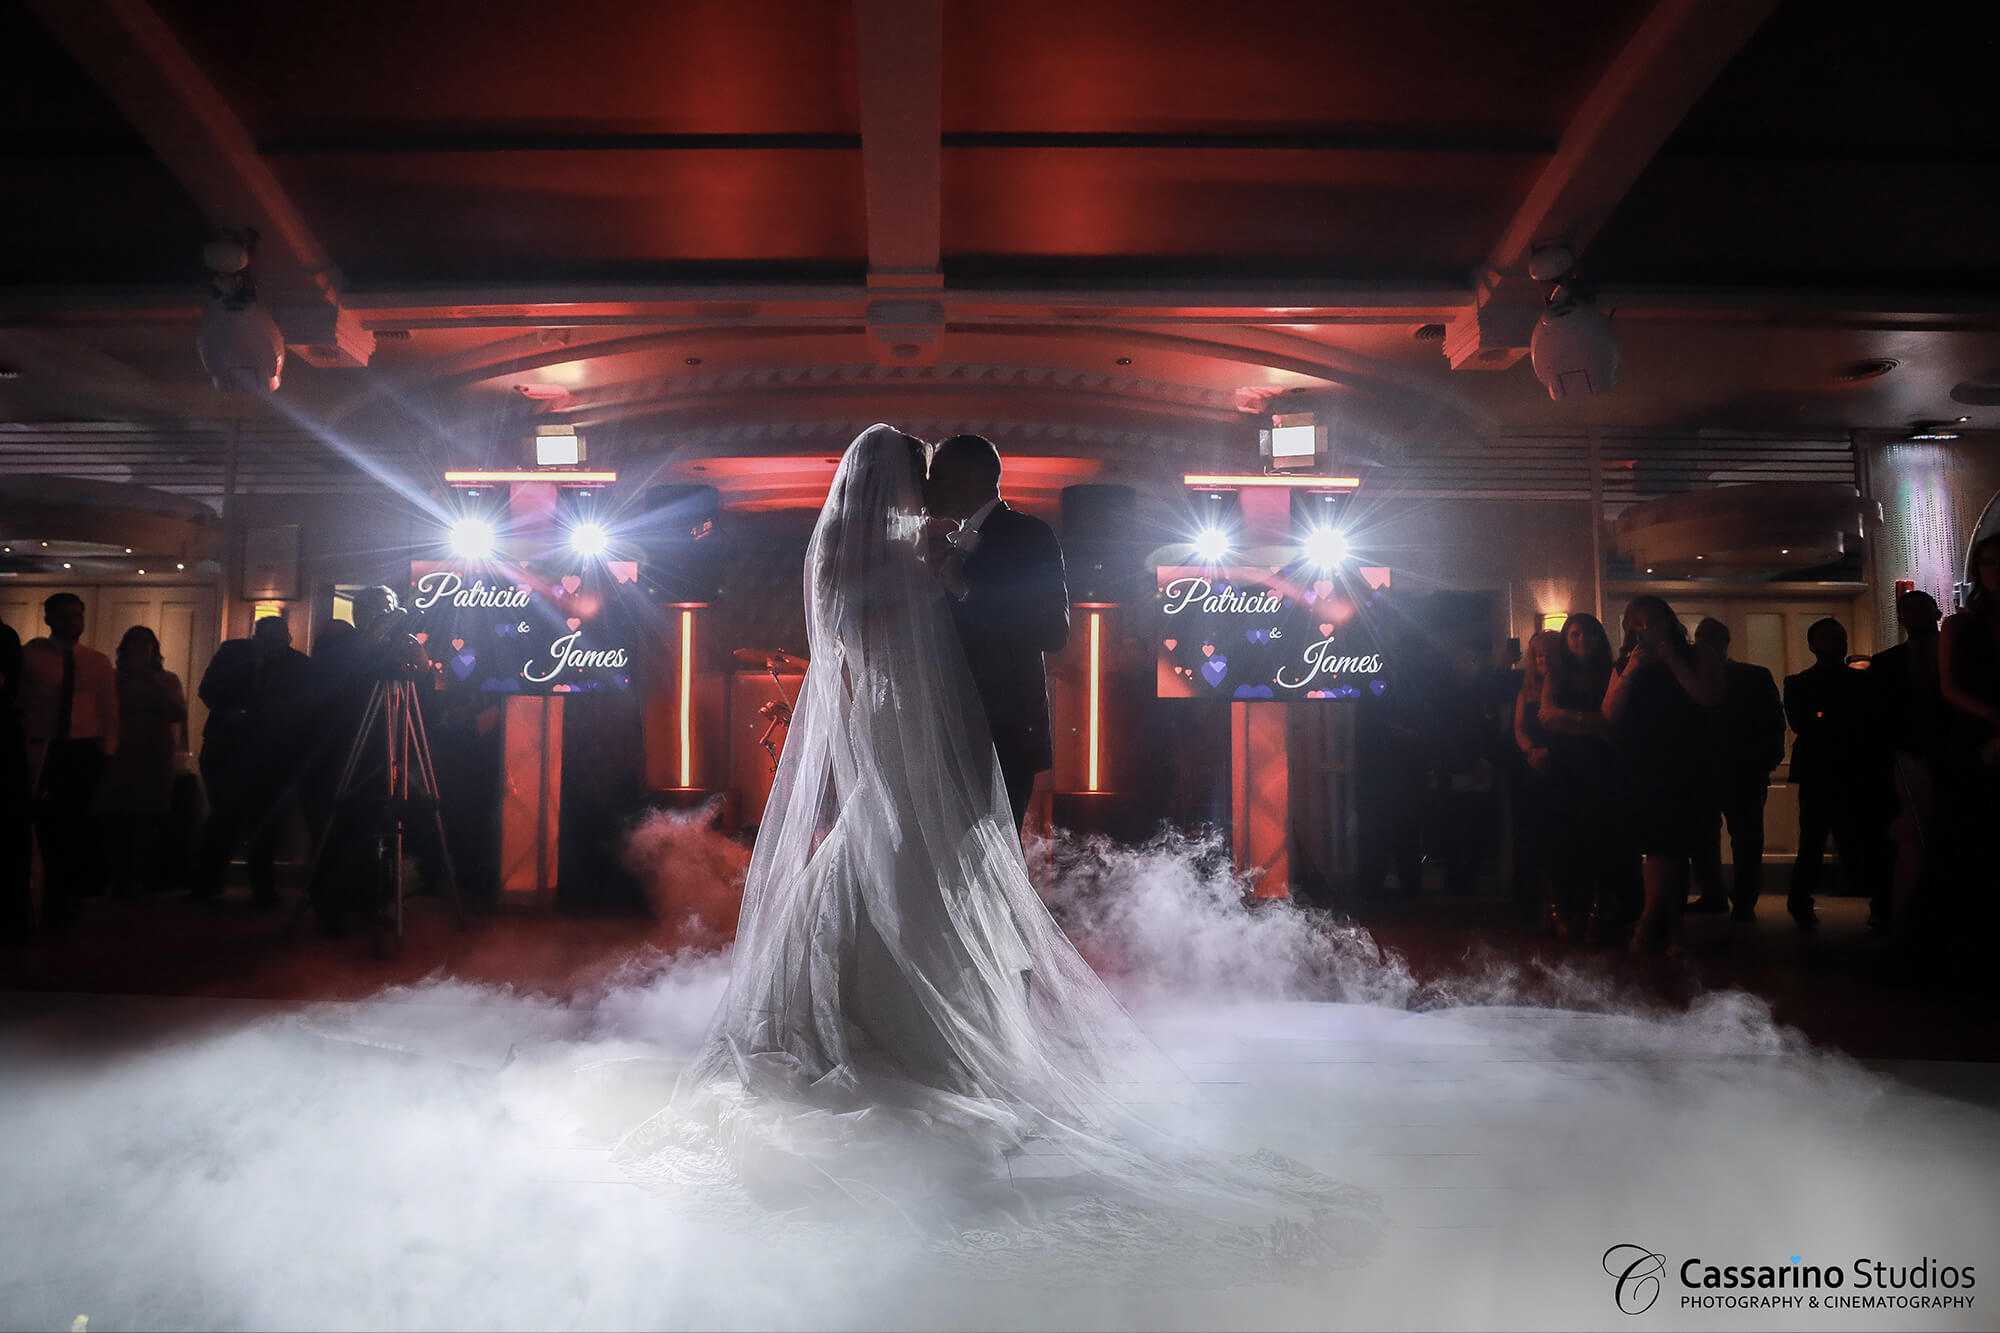 Normandy Ballroom Couple dancing with decorative smoke at their feet